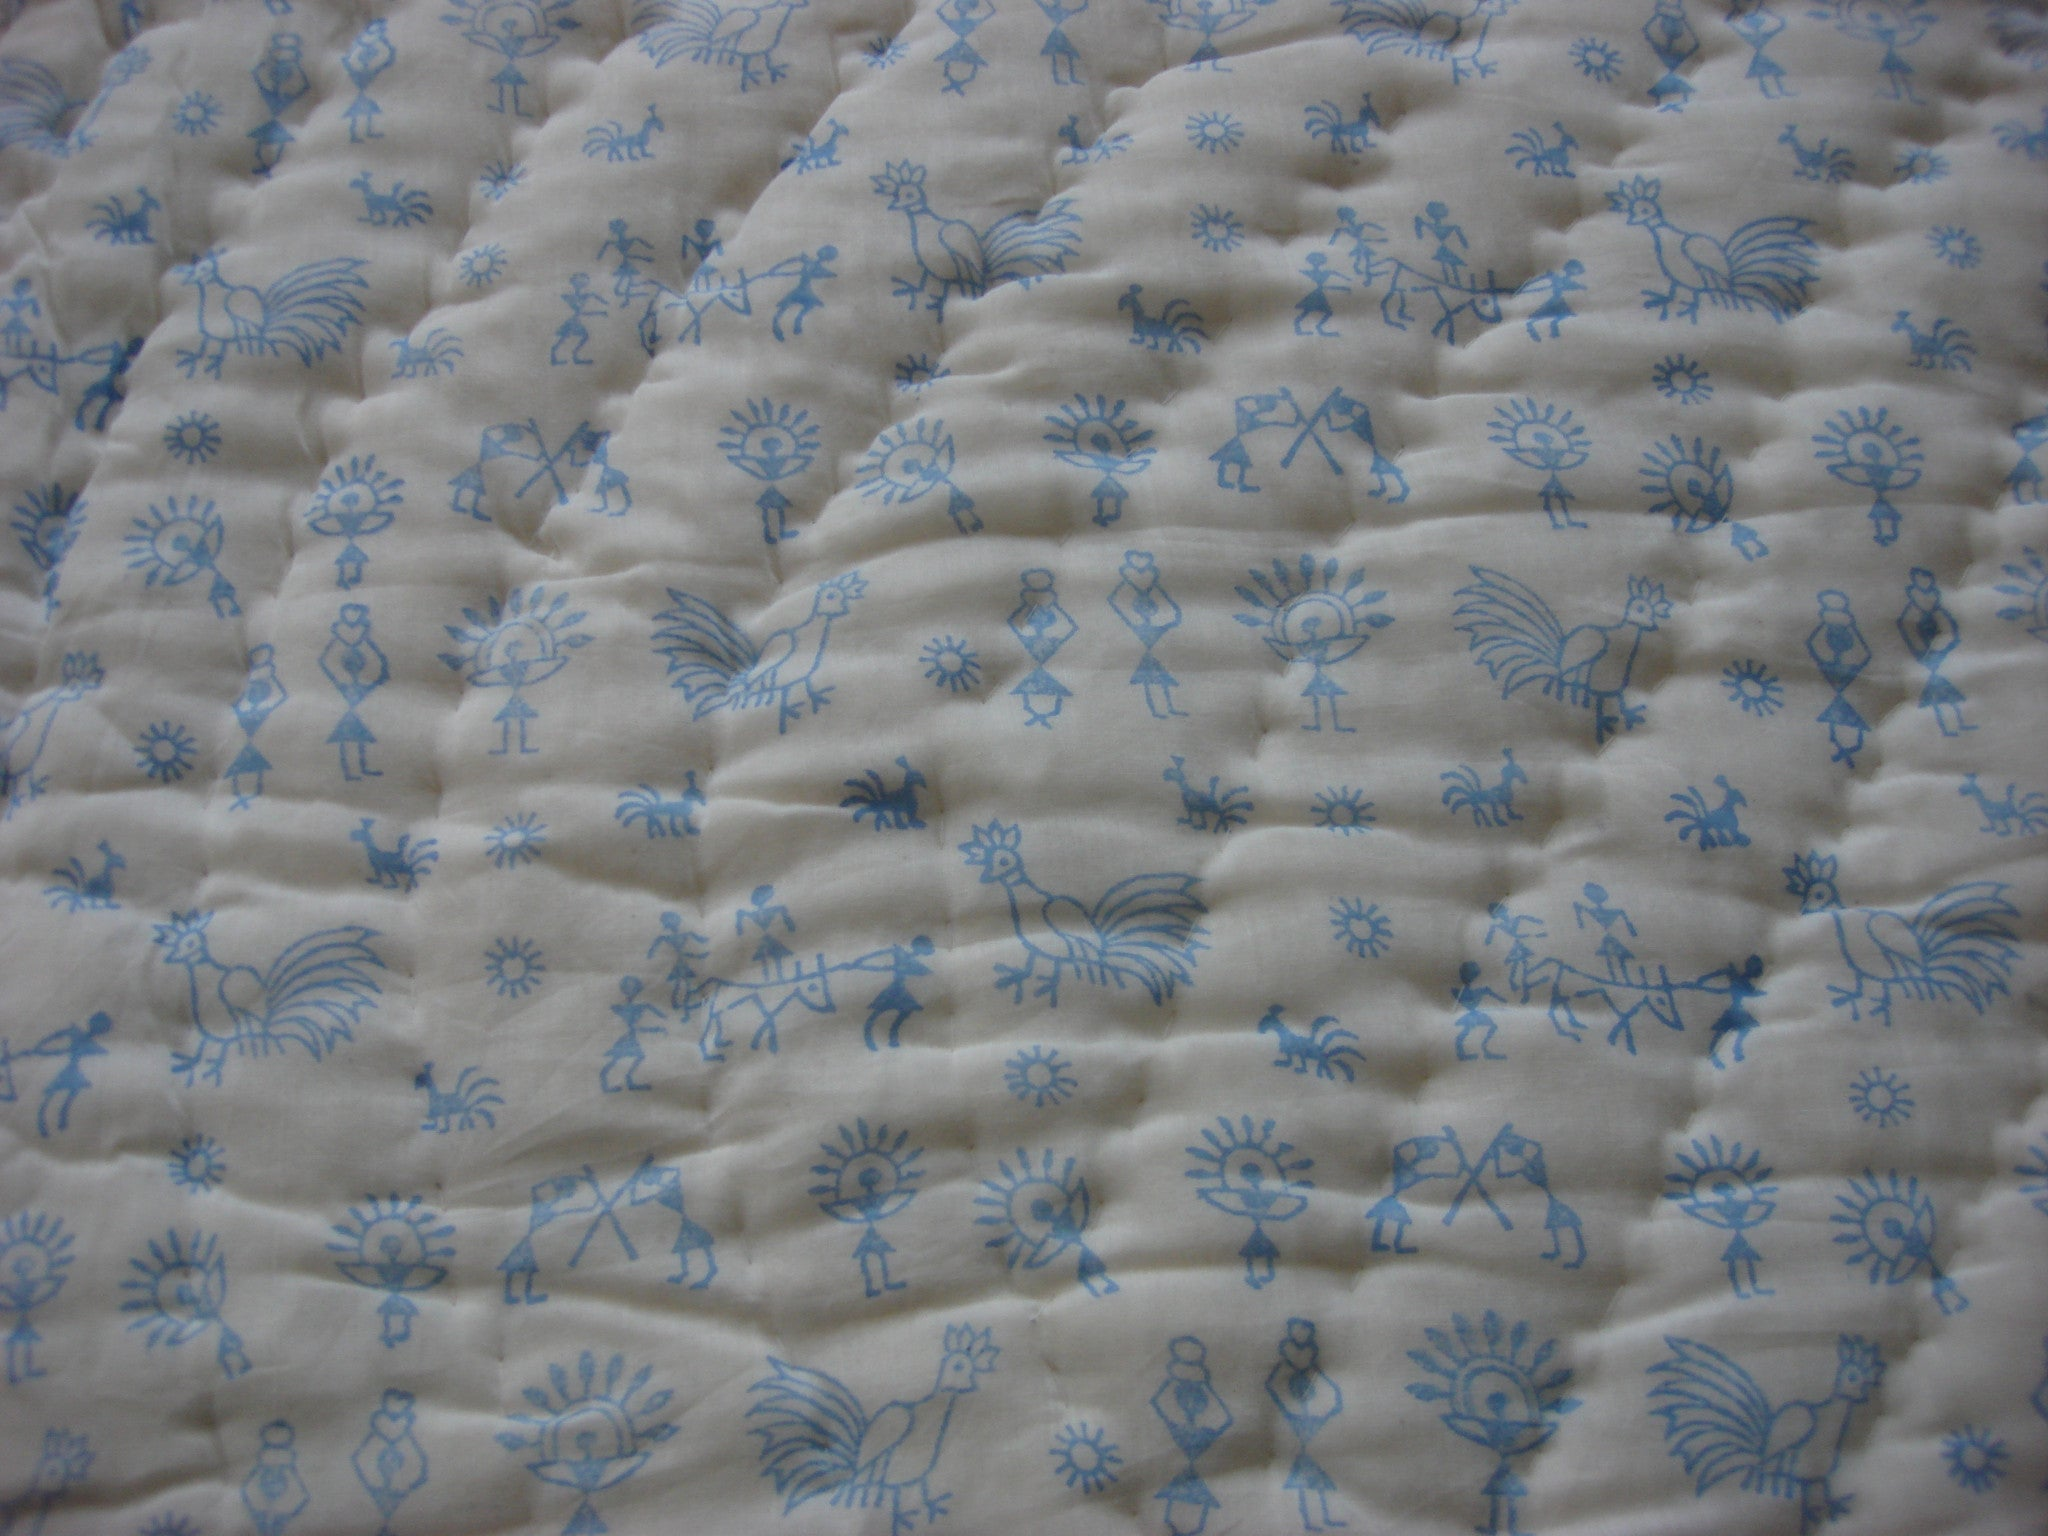 QBP 111 - Handmade, reversible, cotton, block printed quilt in ocean blue, Egyptian design - Pentagon Crafts